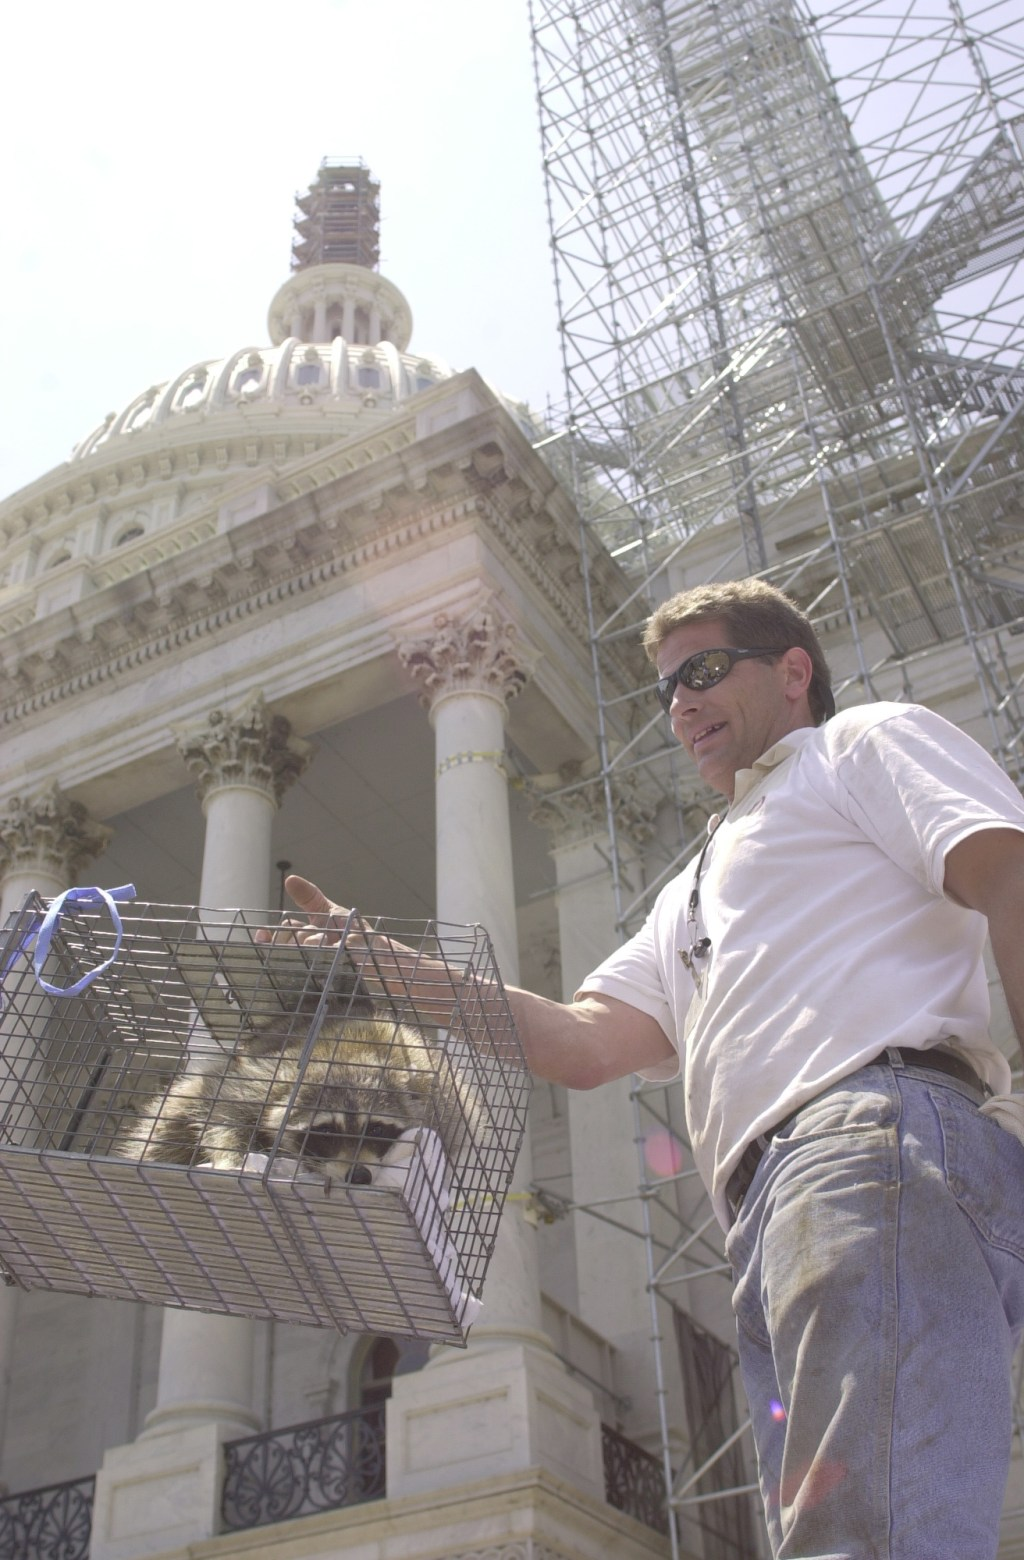 Racoon.2(TW) 053100 --Bruce Tinkham of the Aulson Co. displays a racoon after it had been captured form the Capitol's dome.